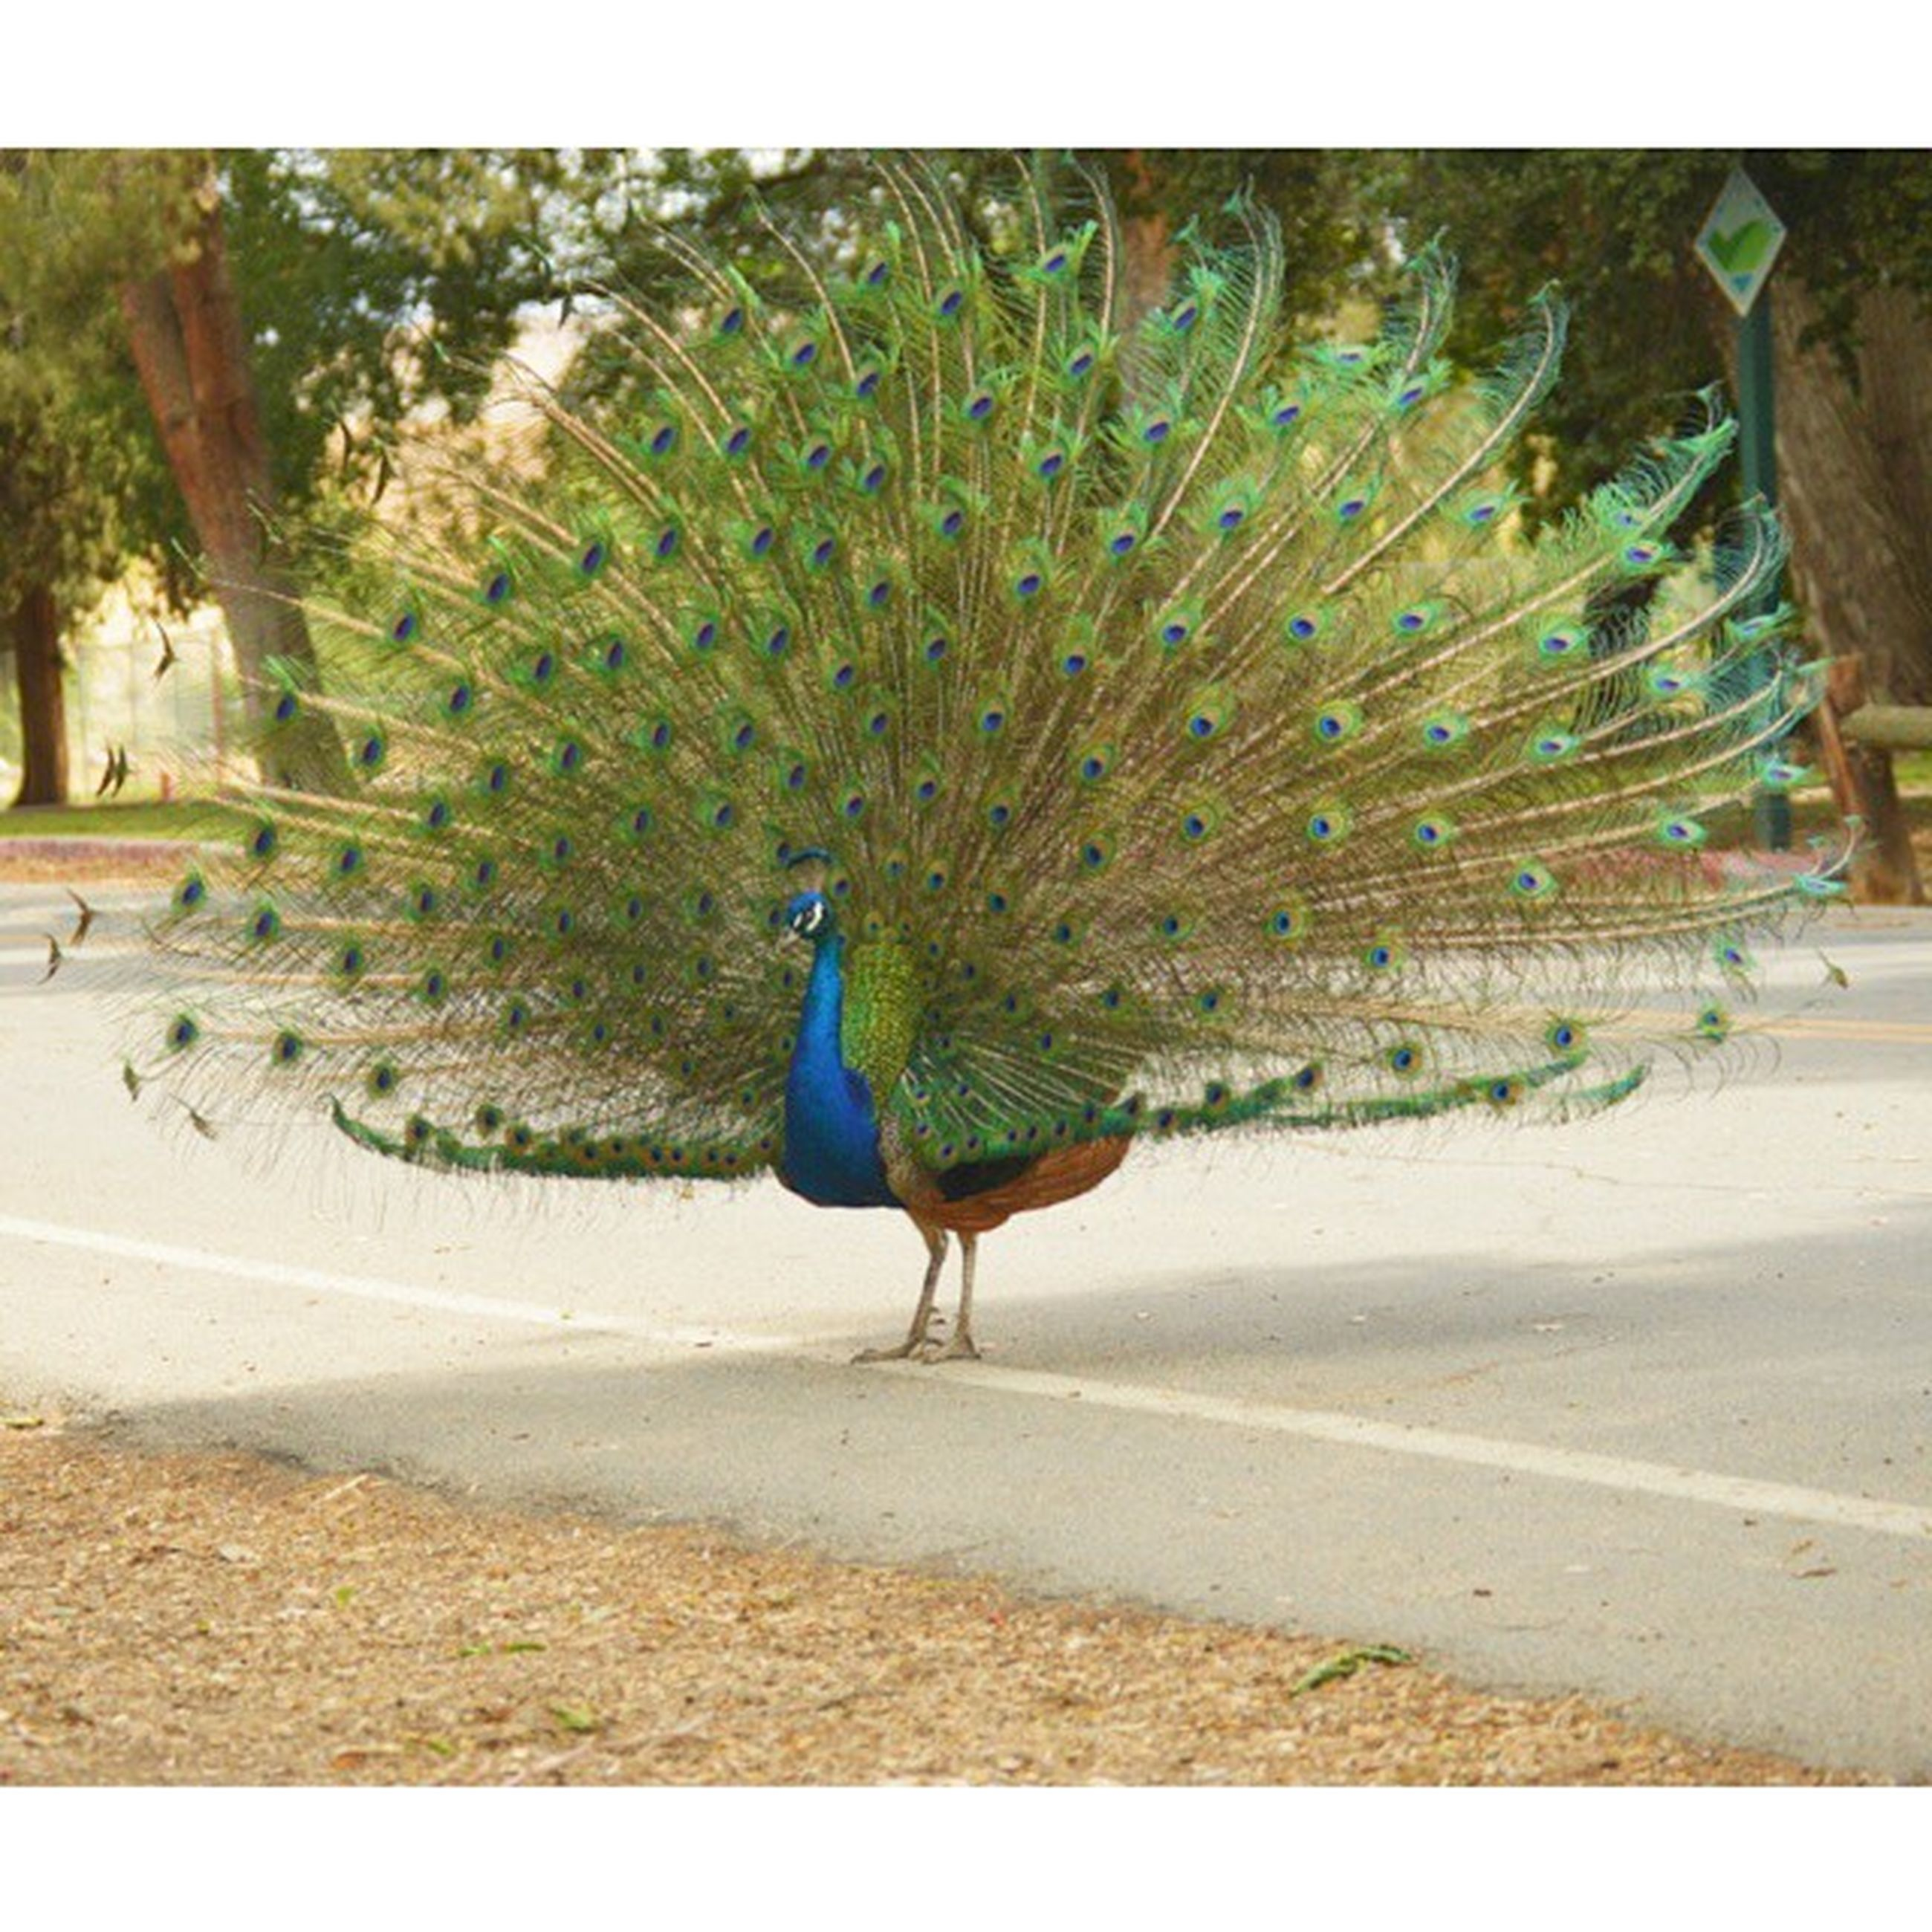 animal themes, bird, one animal, animals in the wild, wildlife, full length, peacock, nature, walking, outdoors, side view, perching, day, auto post production filter, sunlight, tree, feather, transfer print, green color, no people